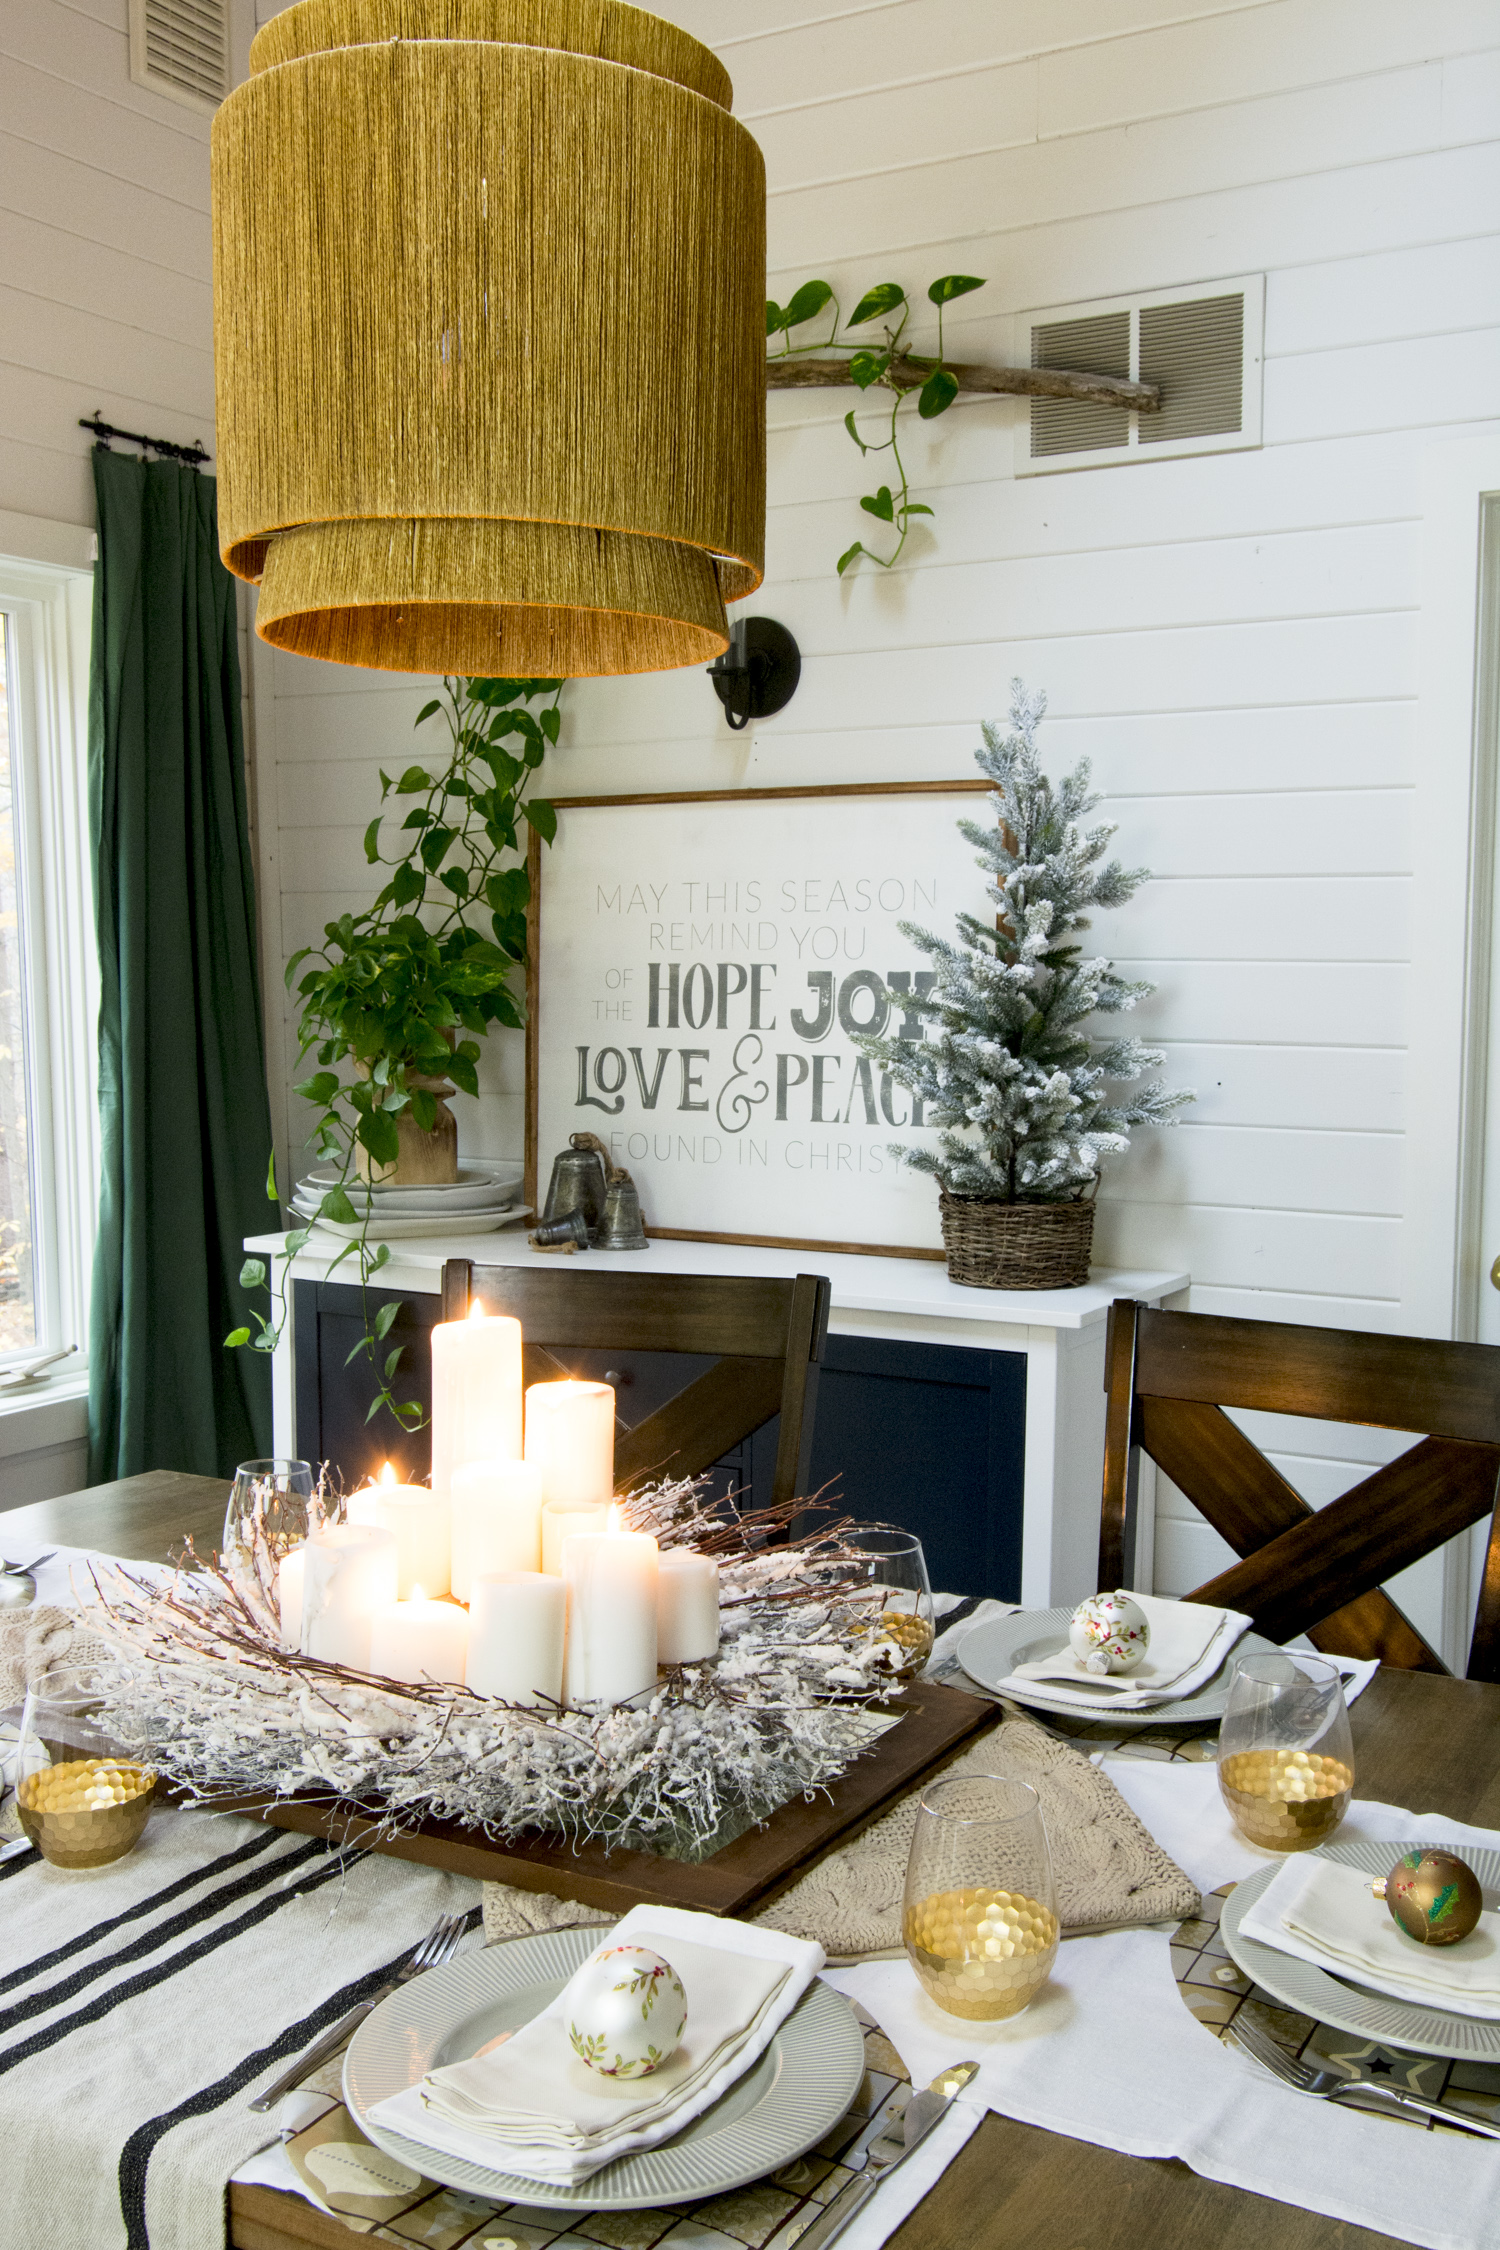 Holiday centerpiece decor ideas.